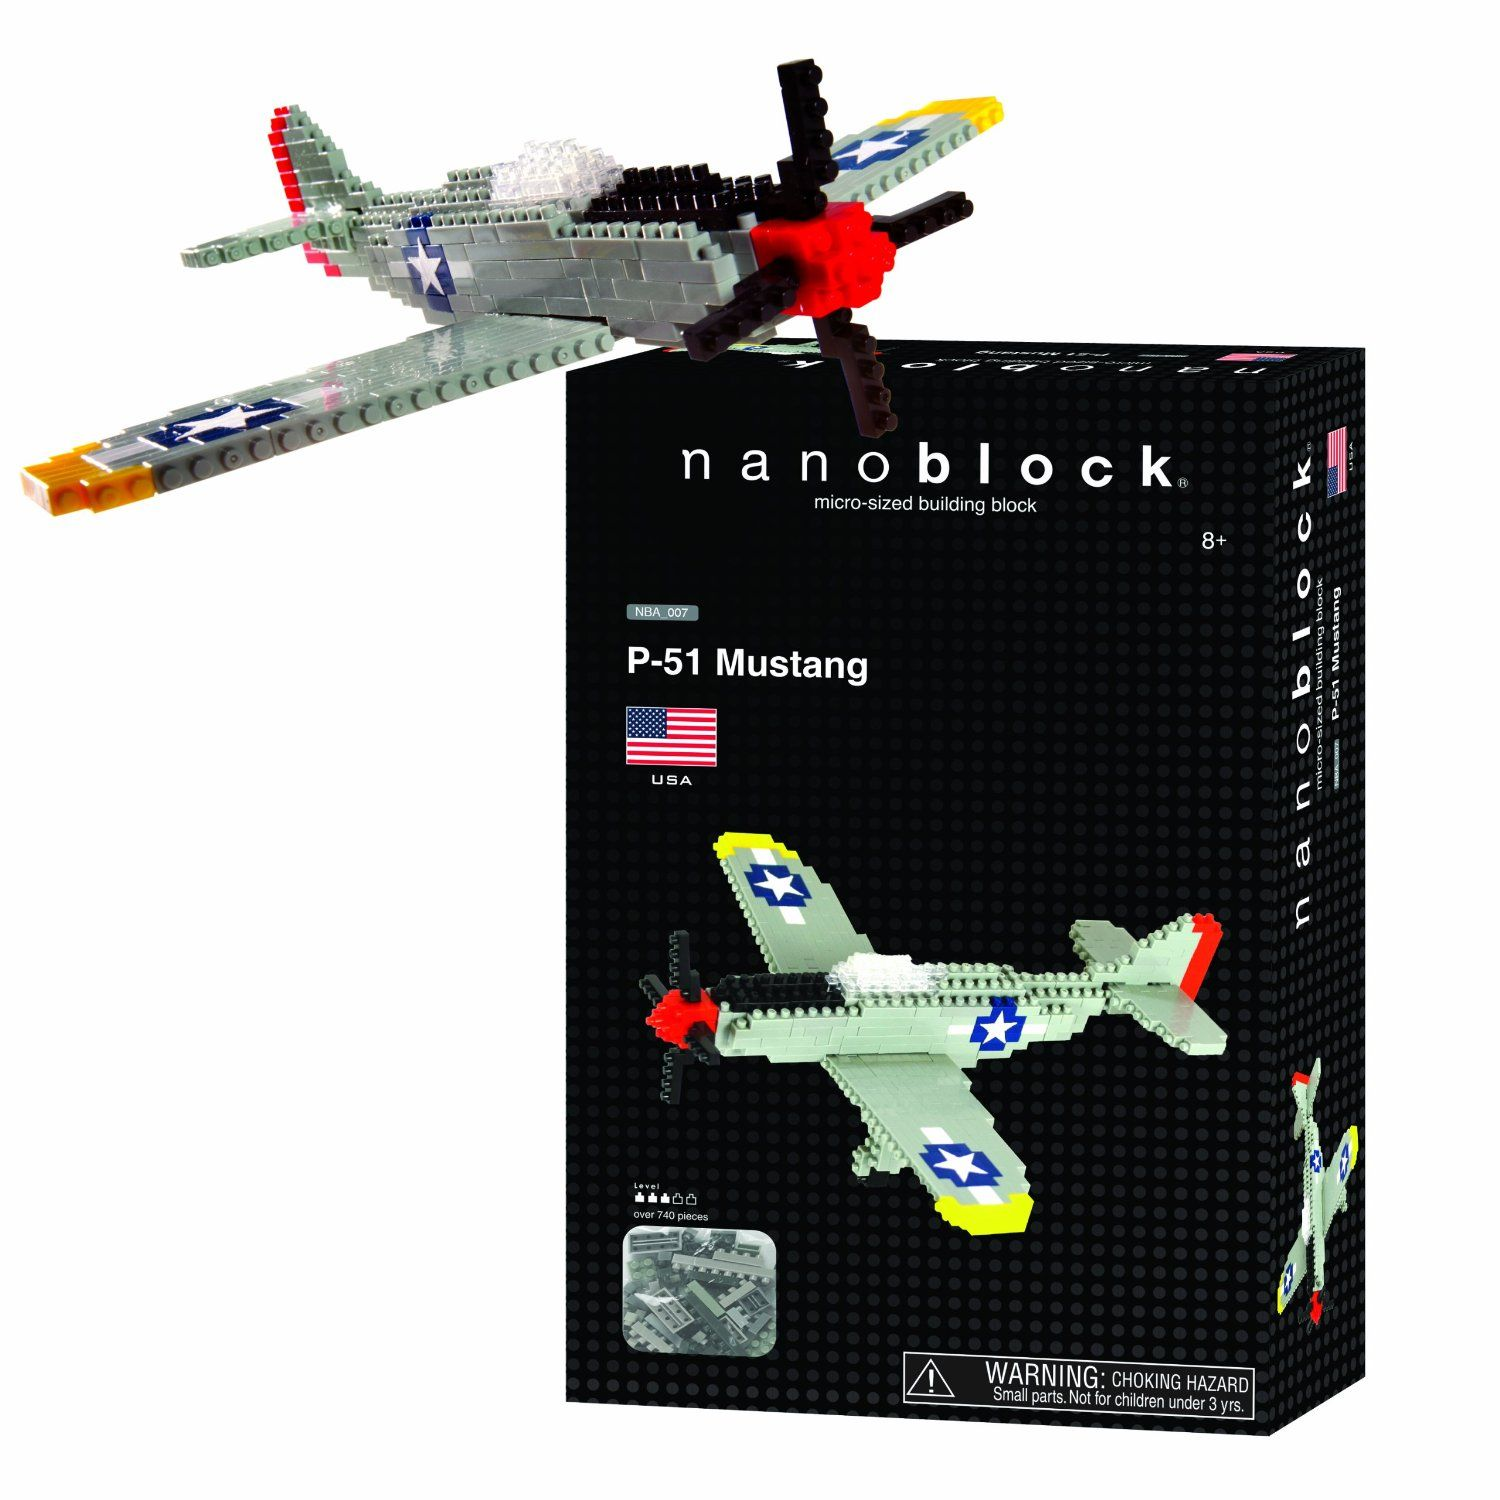 P-51 Mustang Fighter Plane Building Set by Nanoblock (58196) by nanoblock